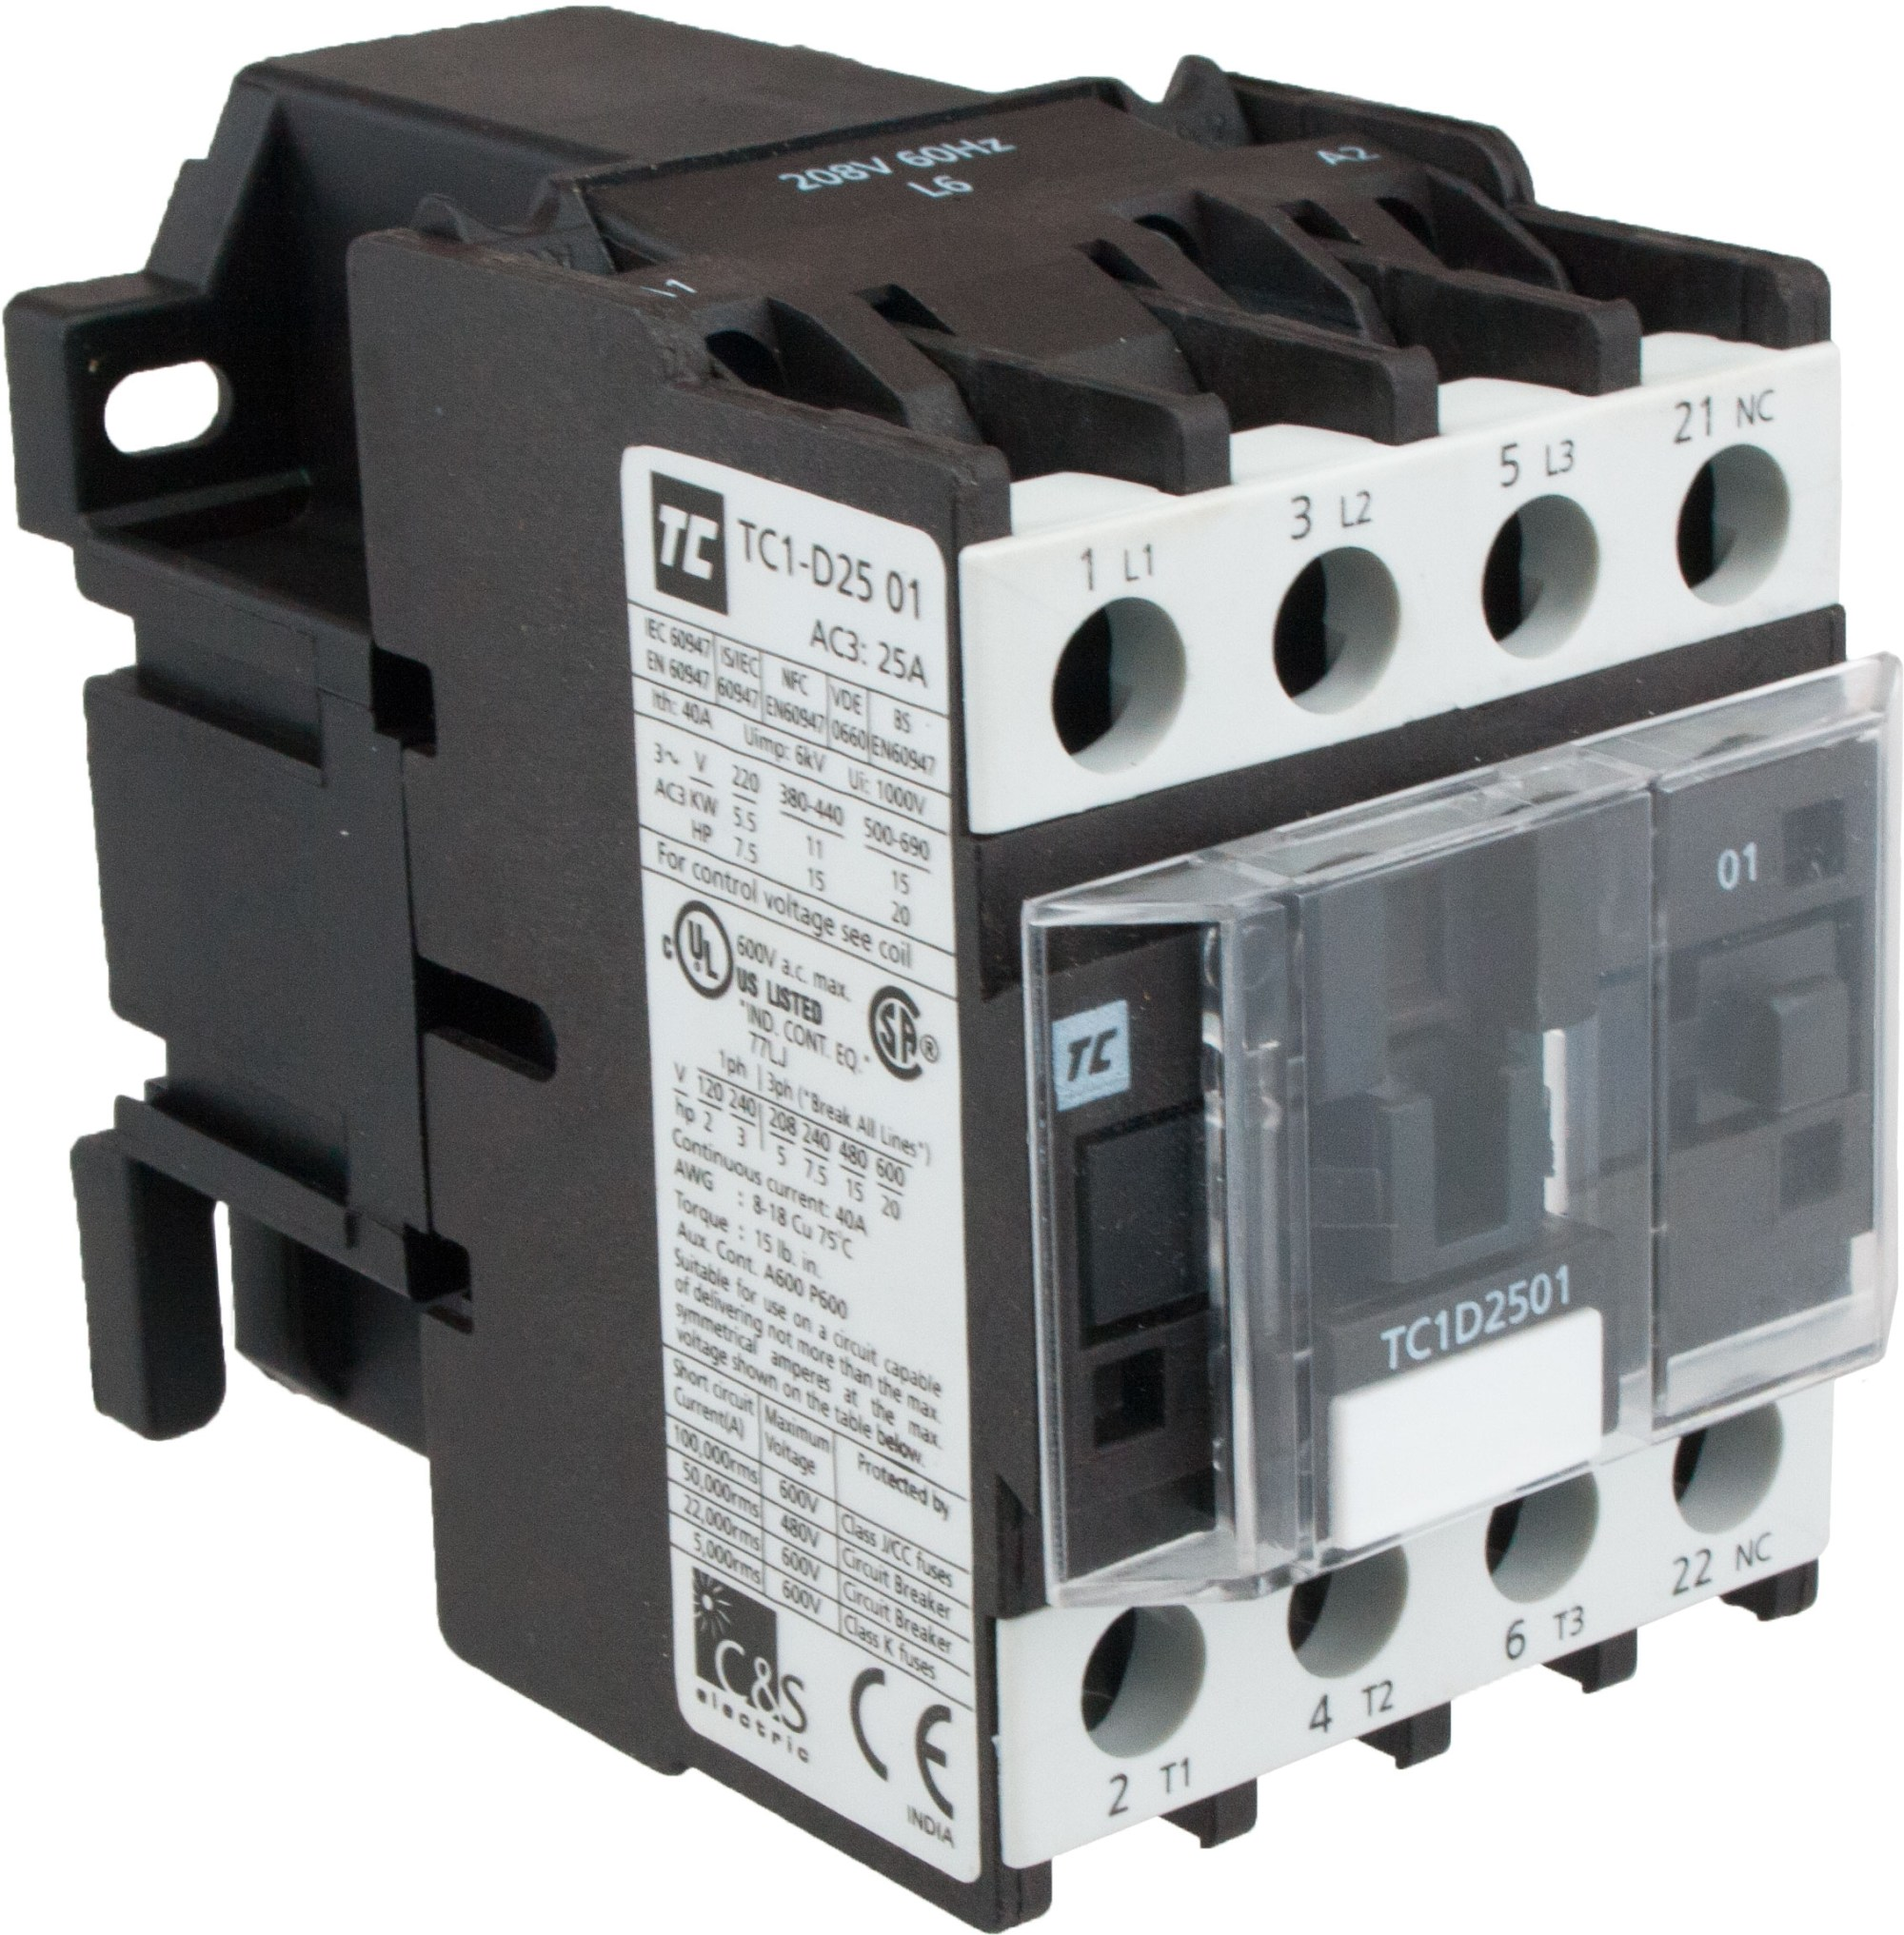 hight resolution of 3 pole contactor 25 amp 440 volt ac coil tc1d2501r7 elecdirect single phase motor reversing contactor wiring 220 3 phase contactor wiring